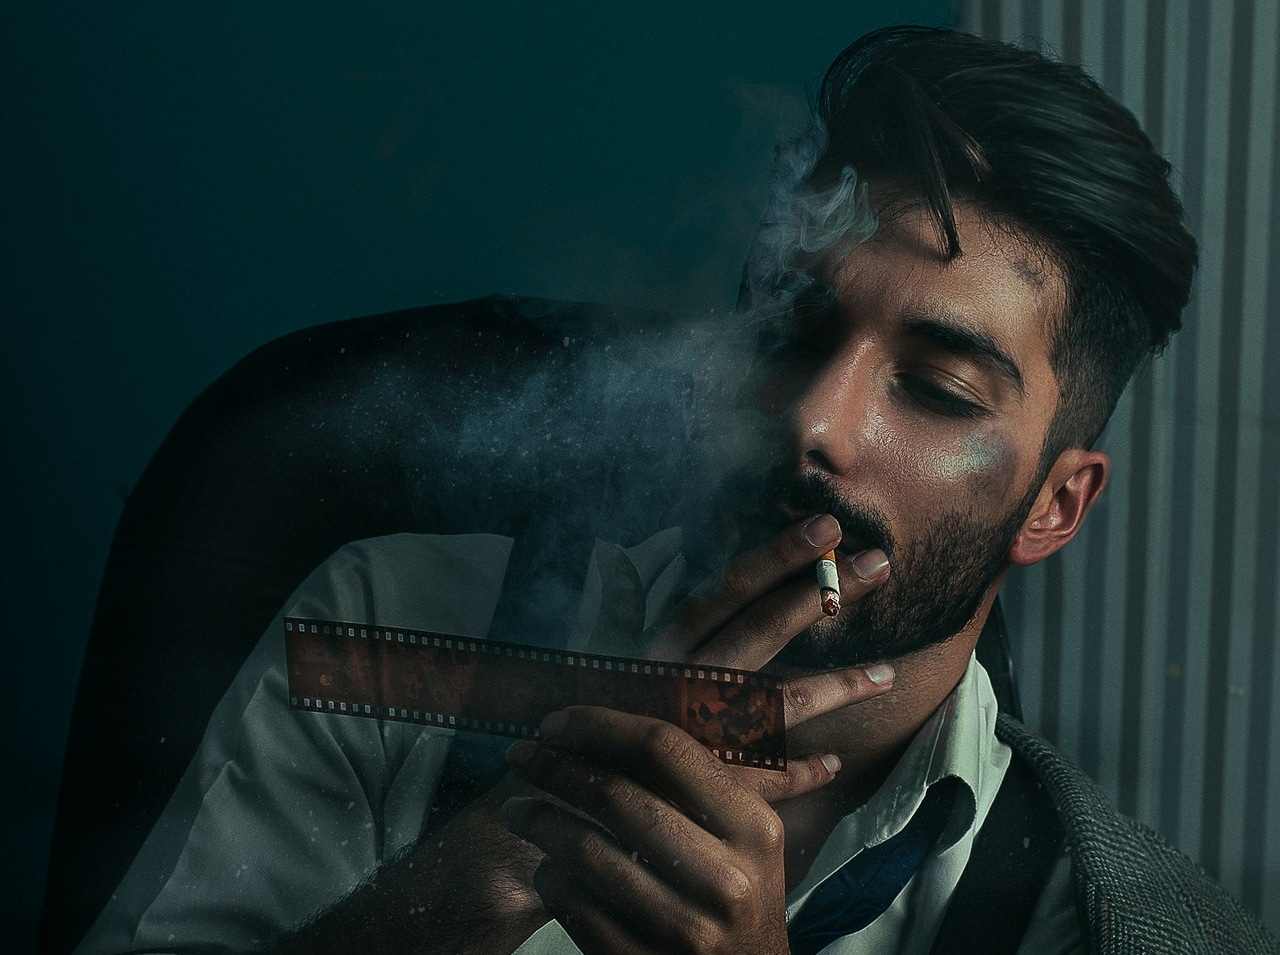 man smoking a cigarette while looking at a film